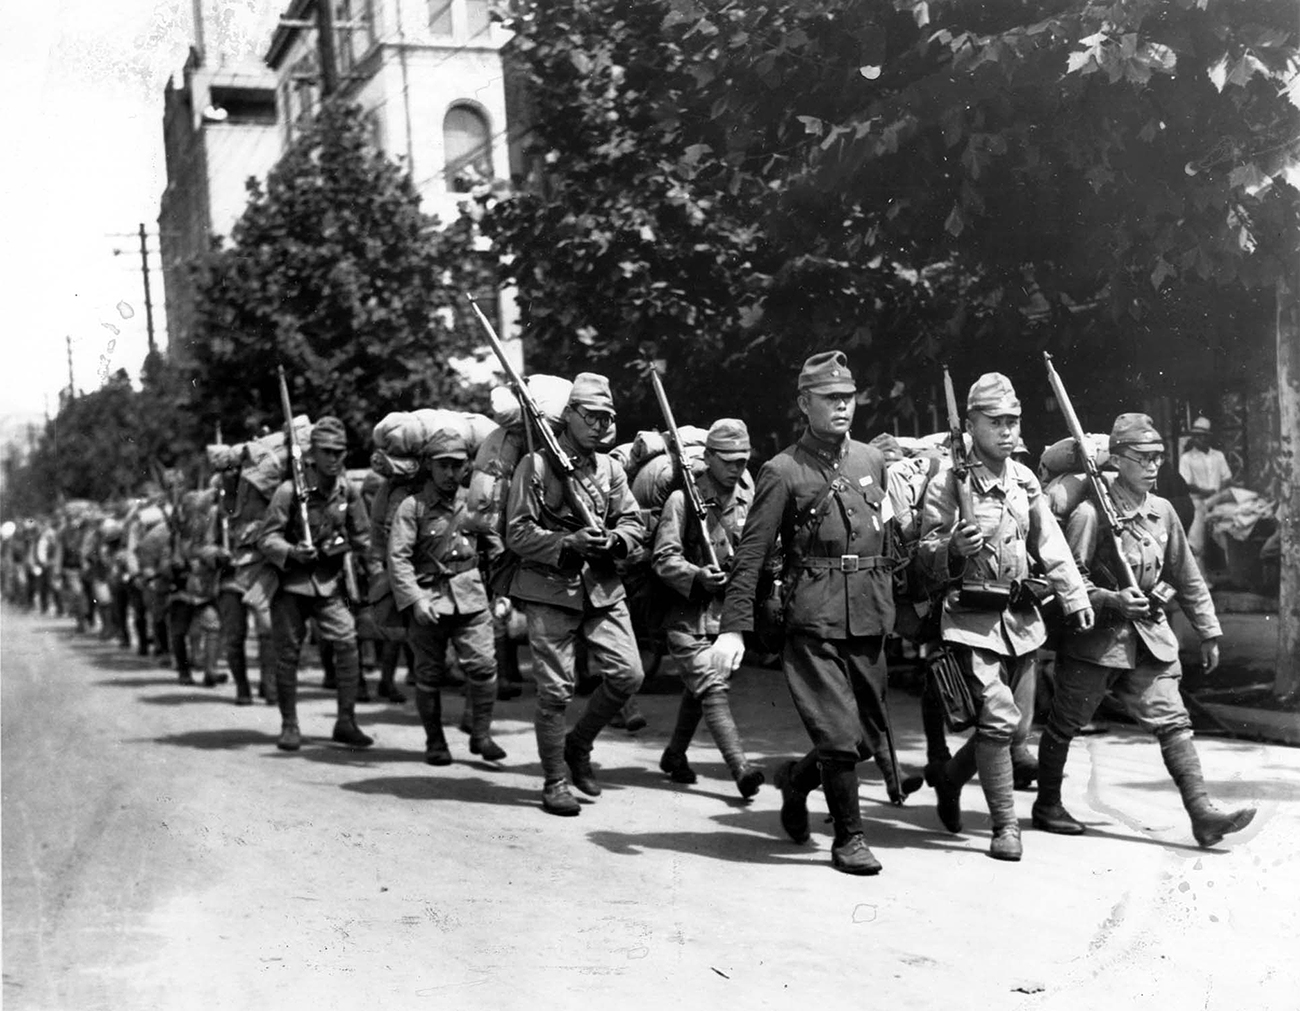 Japanese soldiers marching in Seoul in the 1920s.